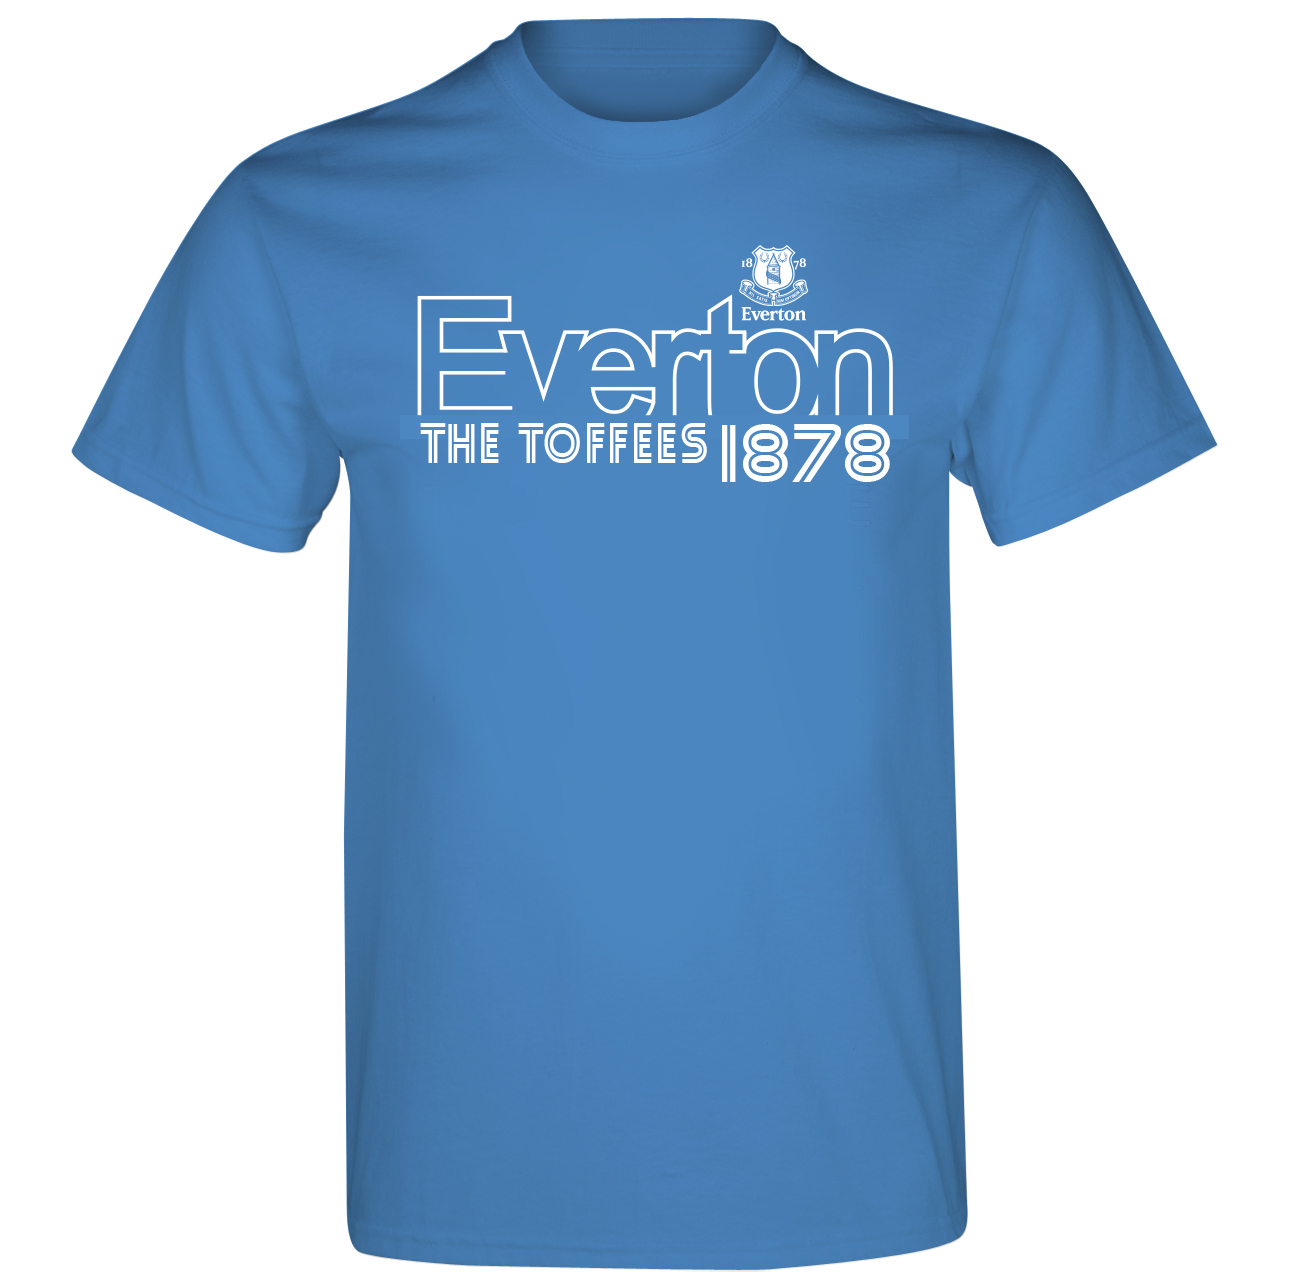 Everton 2for?15 Line T-Shirt - Sapphire Blue - Junior